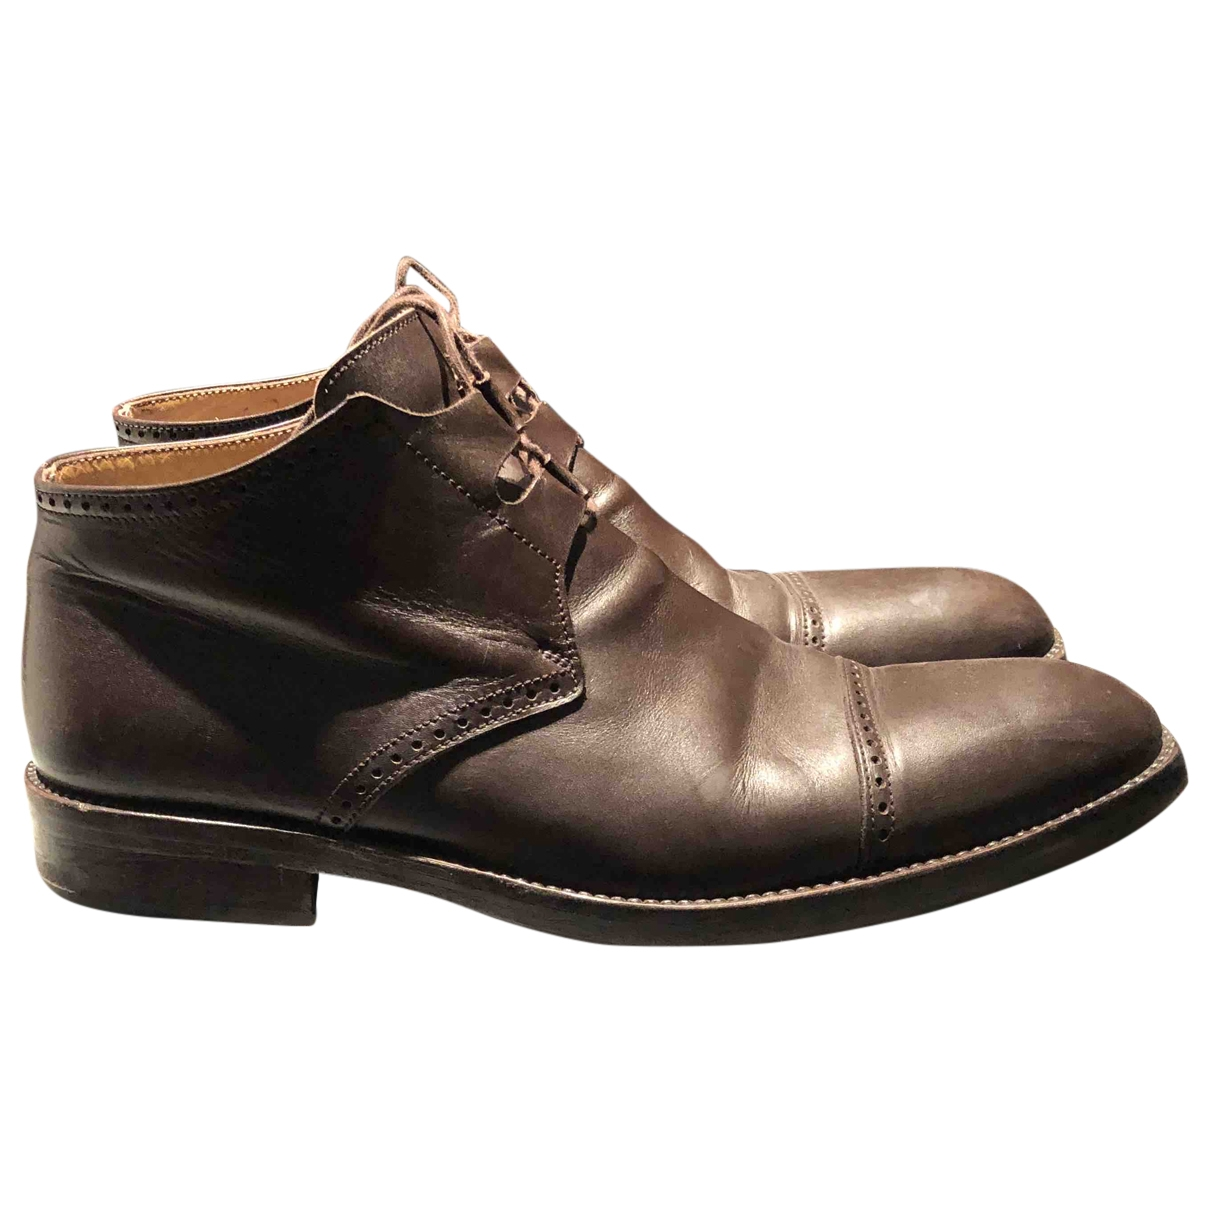 Georges Rech \N Brown Leather Boots for Men 43 EU